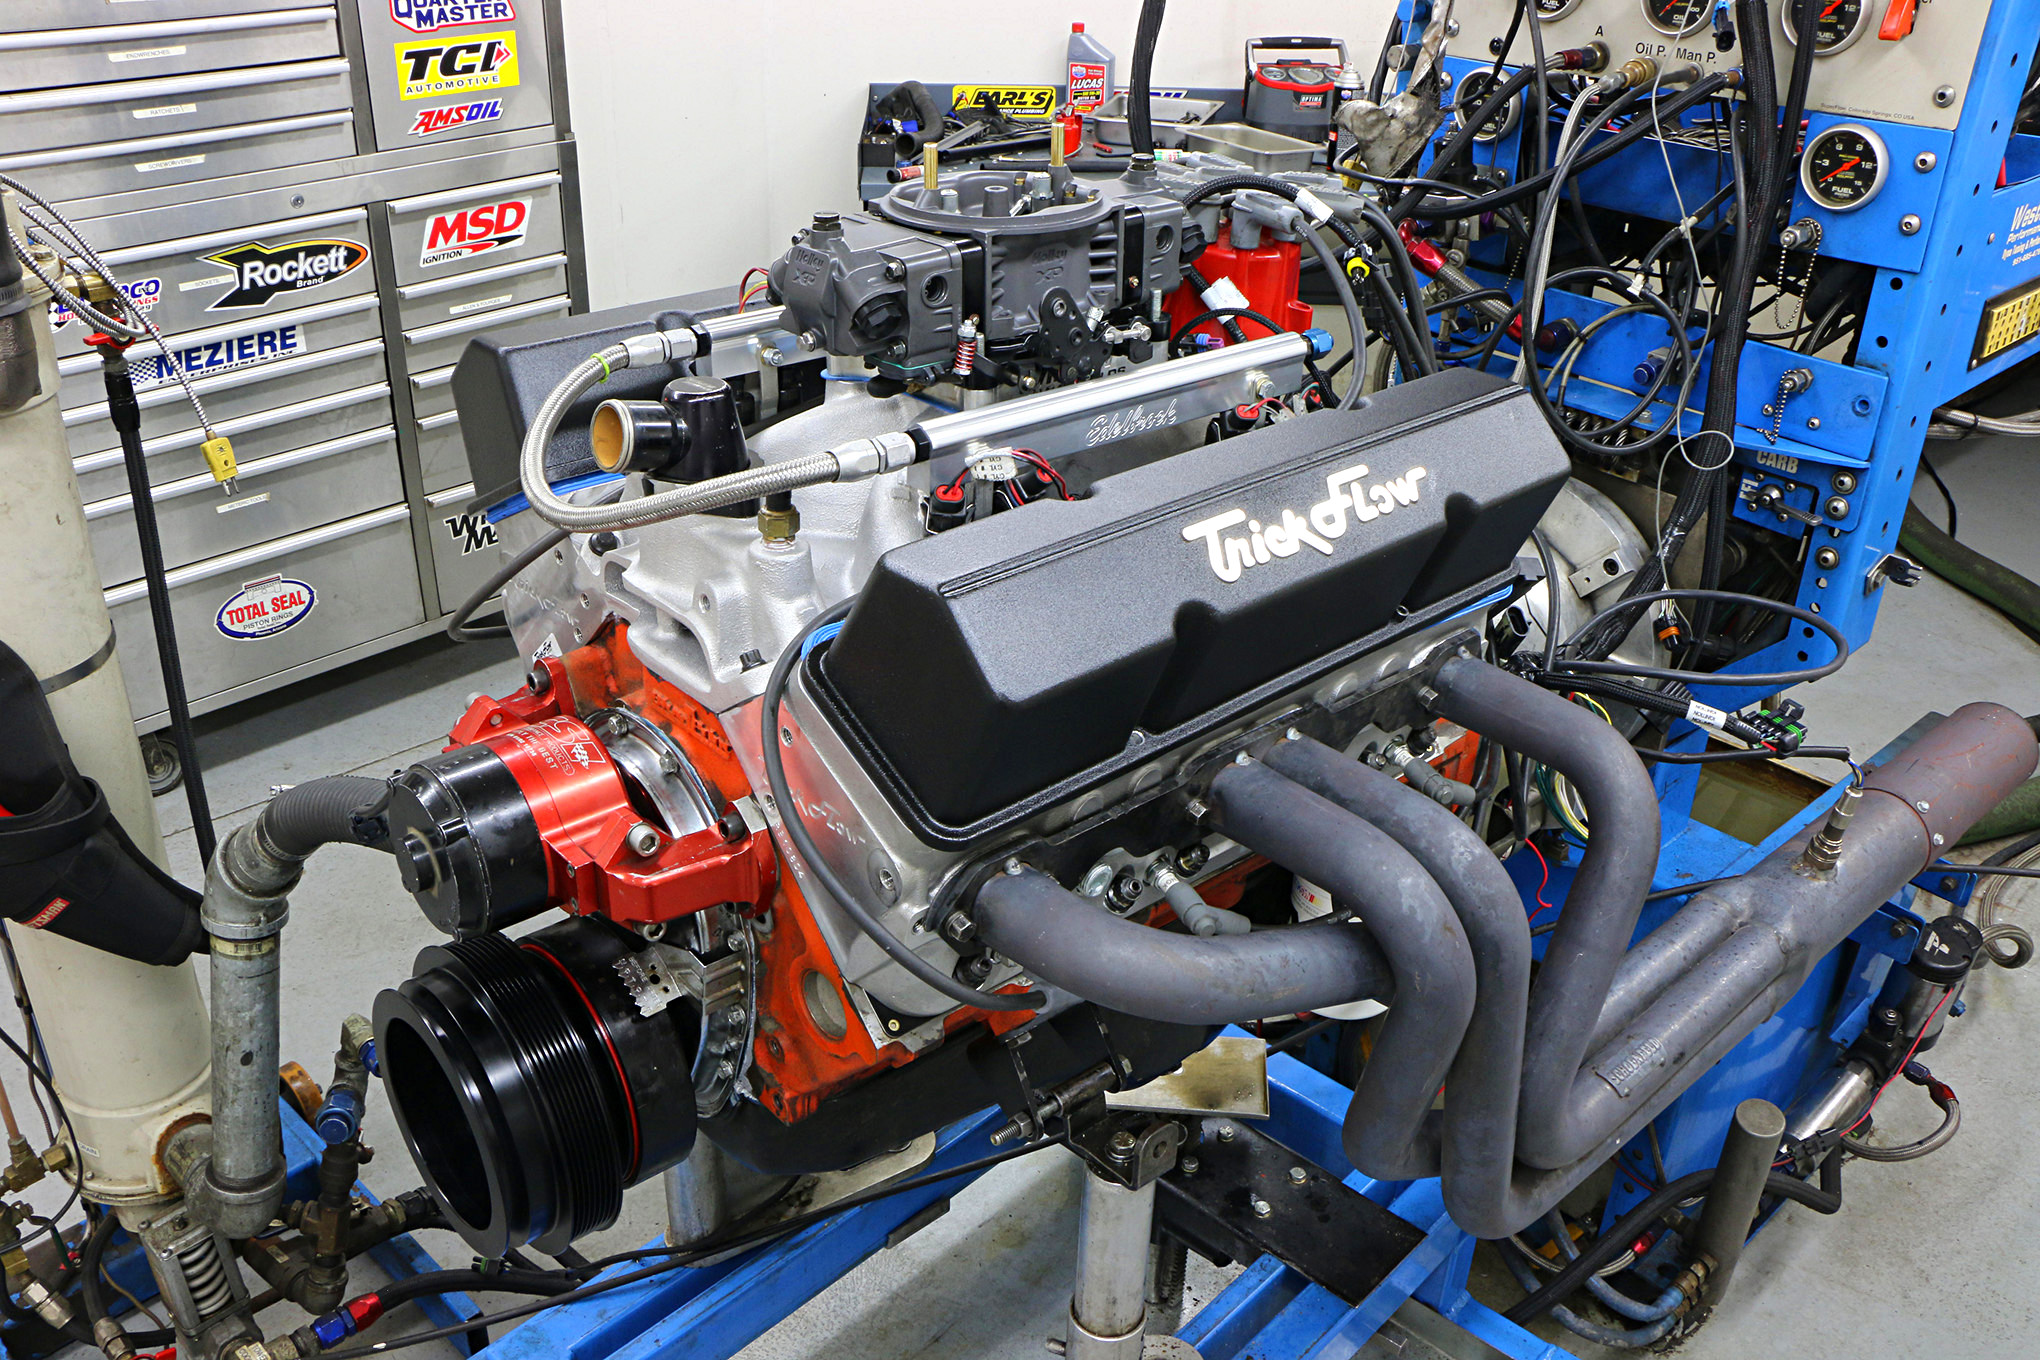 1,000 HP From a Broken-In 400-Inch Small-Block Chevy on